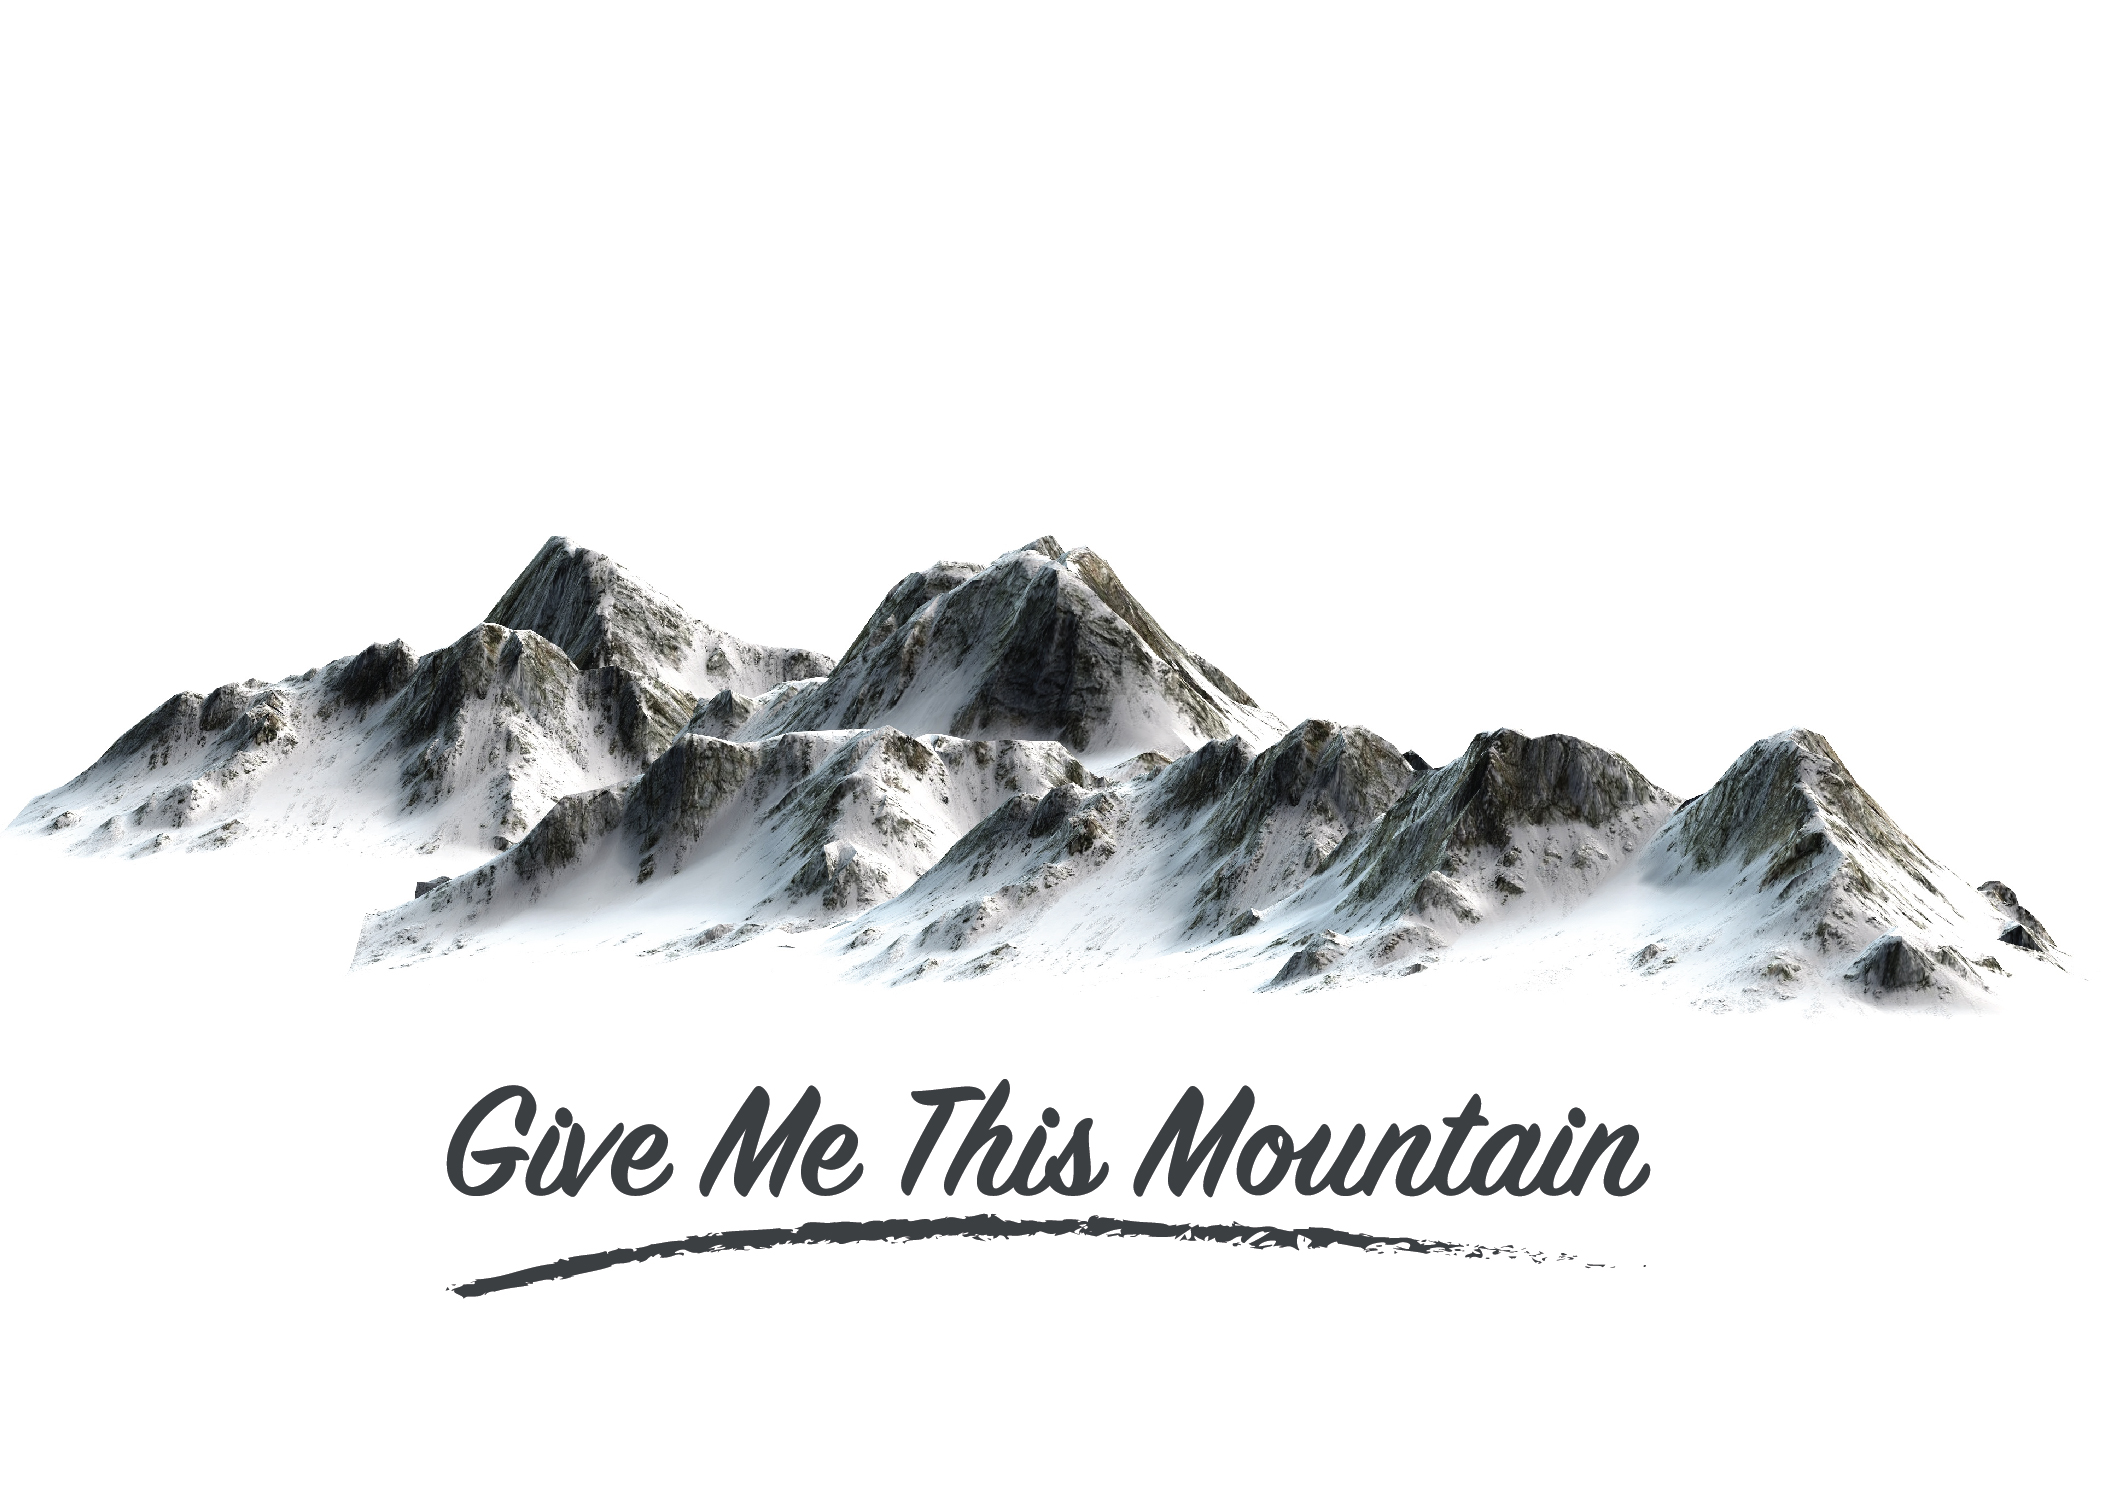 Give Me This Mountain [5x7]-02.jpg